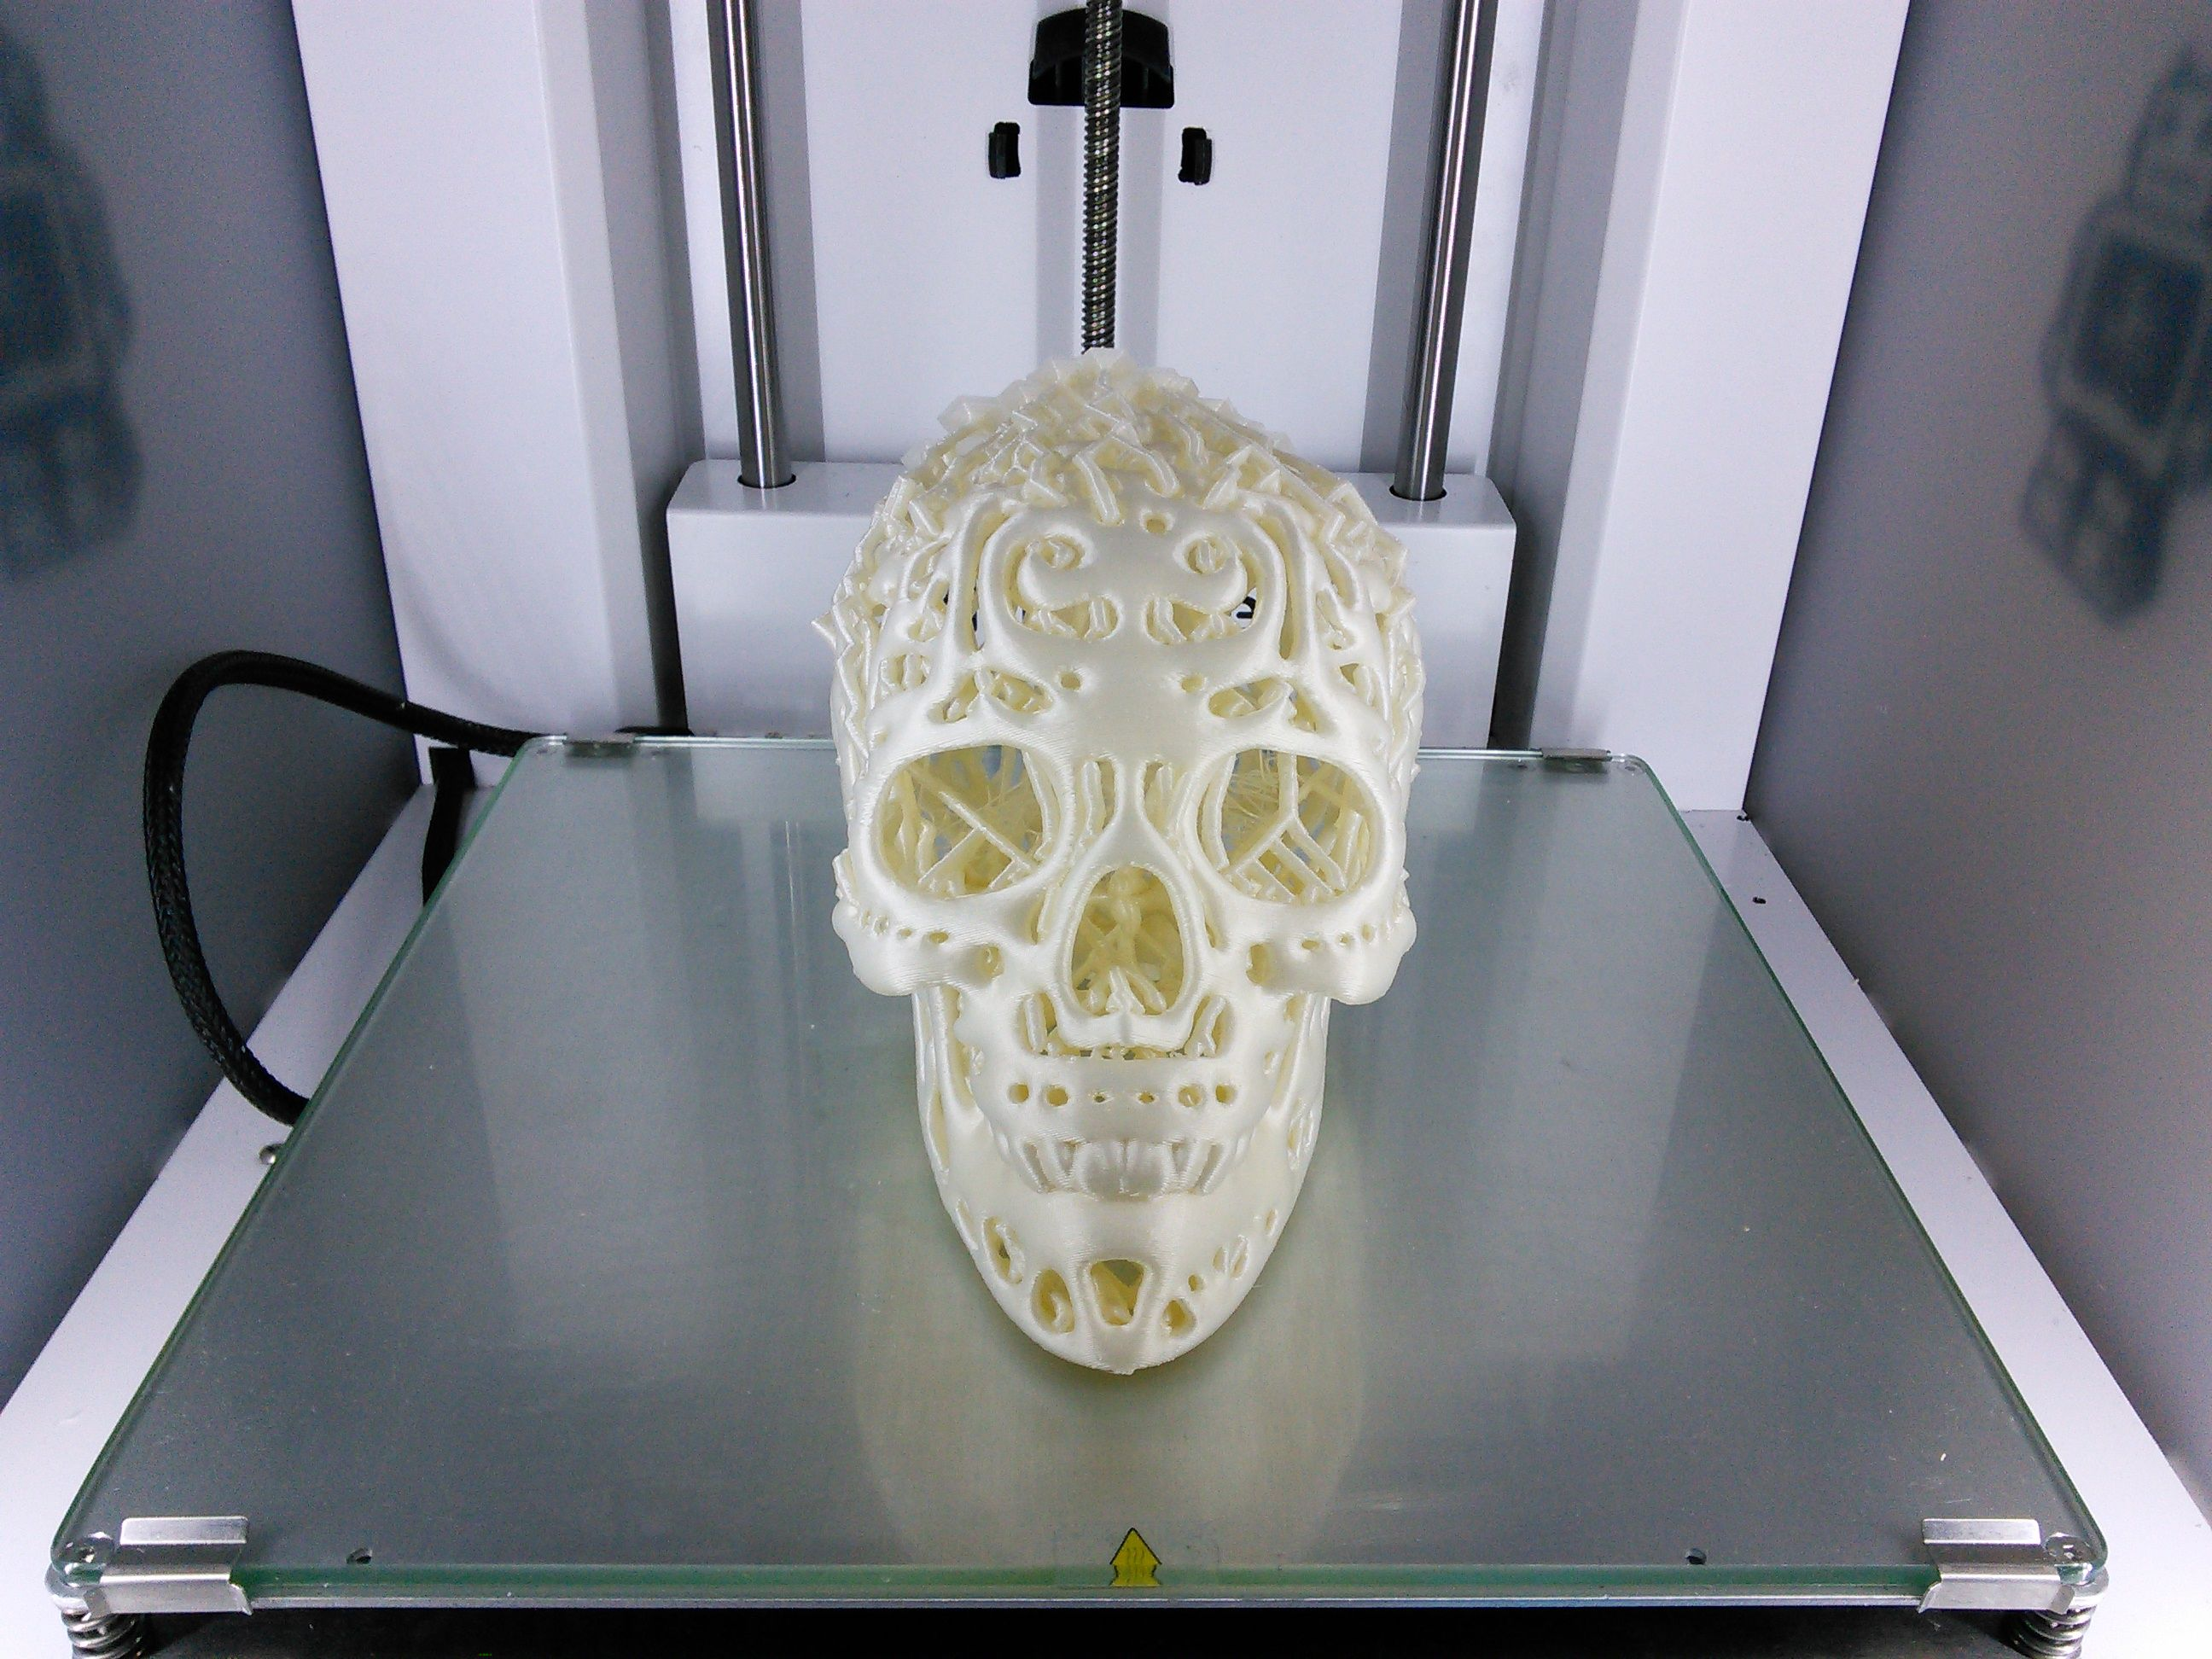 3D Printed Filigree Cranium by Dizingof on Ultimaker2 020